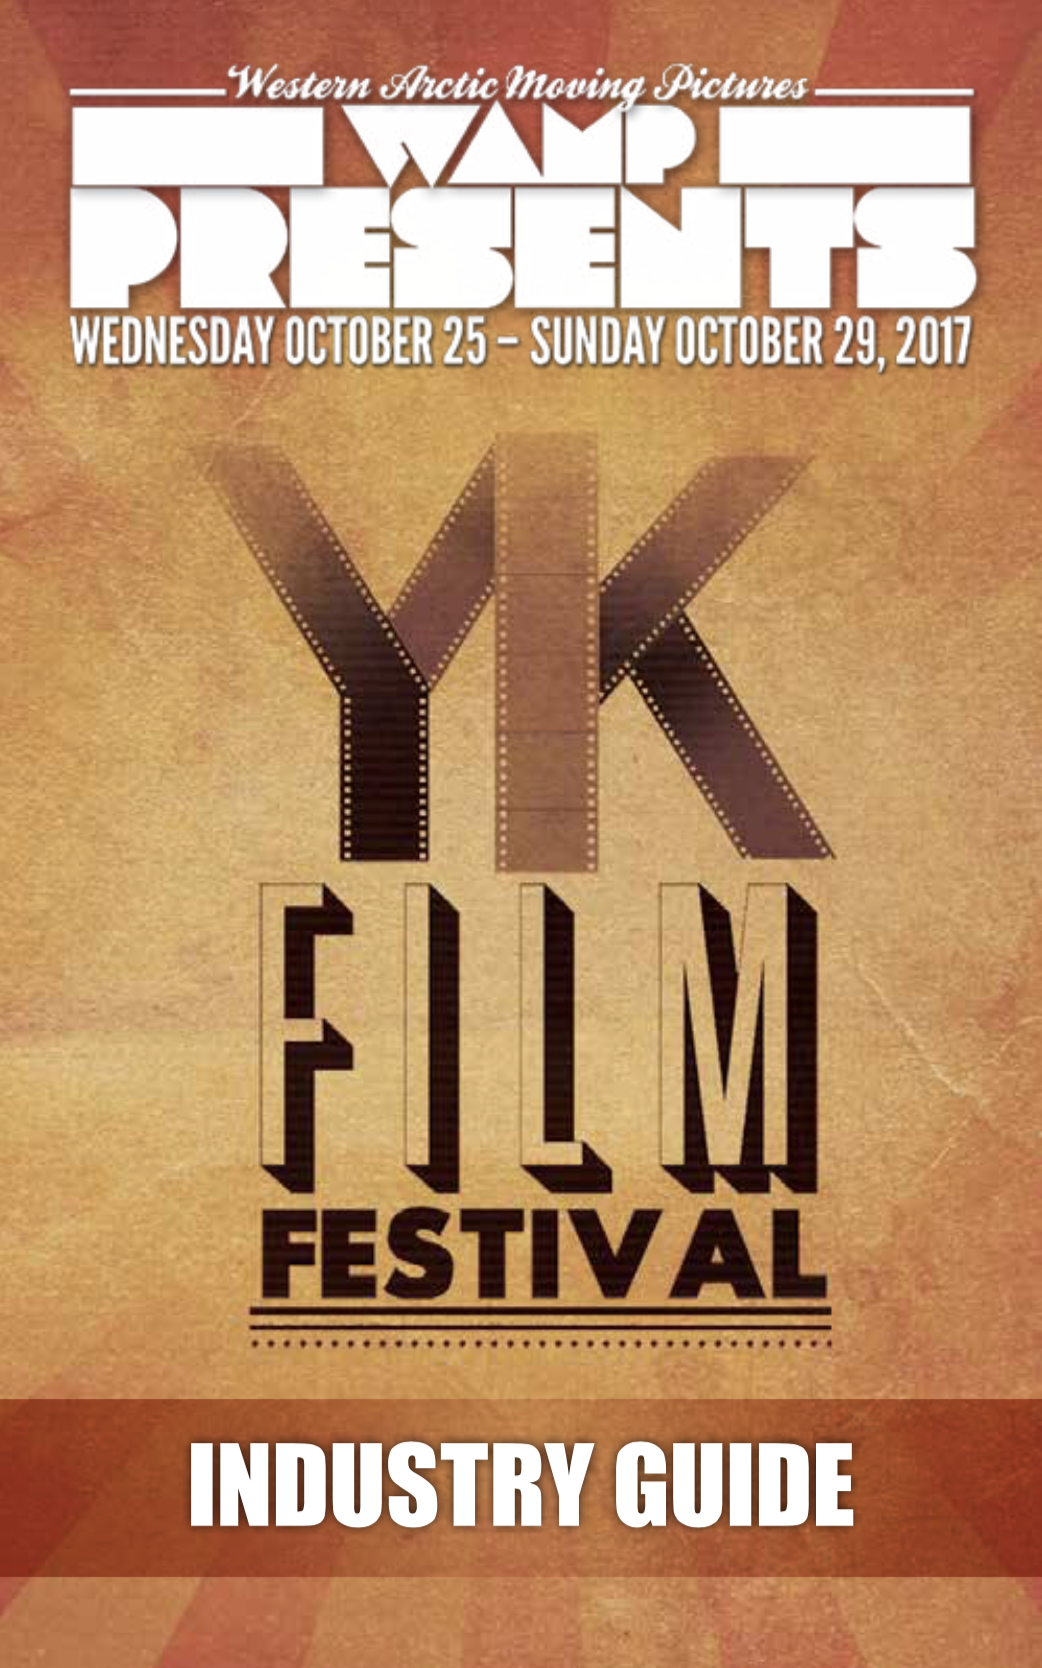 2017 YK Film Festival Industry Guide (PDF)